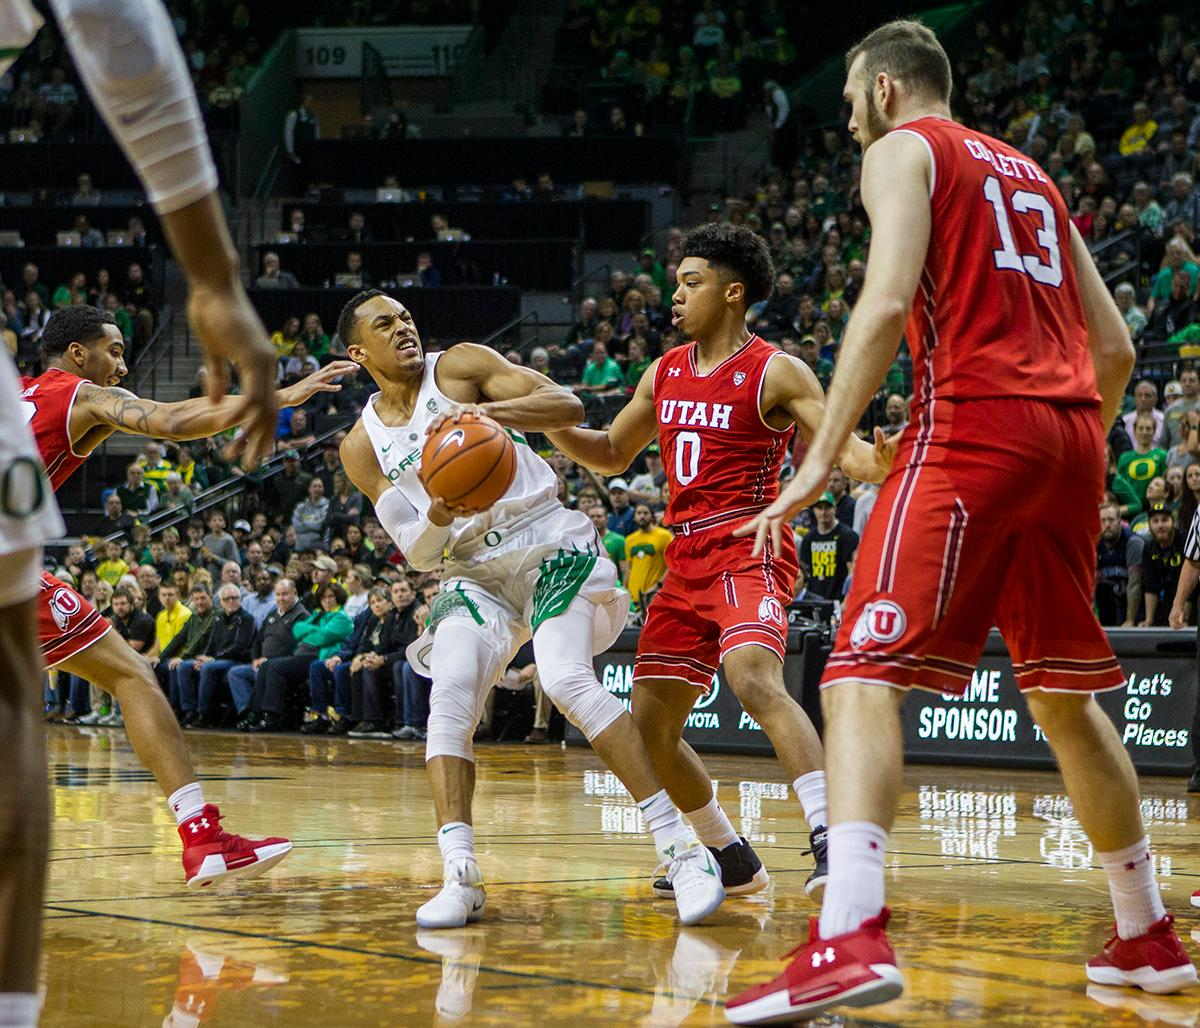 Oregon Ducks Elijah Brown (#5) attempts to keep control of the ball as he looks for the basket. The Utah Utes defeated the Oregon Ducks 66-56 on Friday night at Matthew Knight Arena. This is the first Pac-12 conference game loss at home for the Ducks since January of 2015. This also ended the five home game winning streak for the Ducks against the Utah Utes. Photo by Rhianna Gelhart, Oregon News Lab